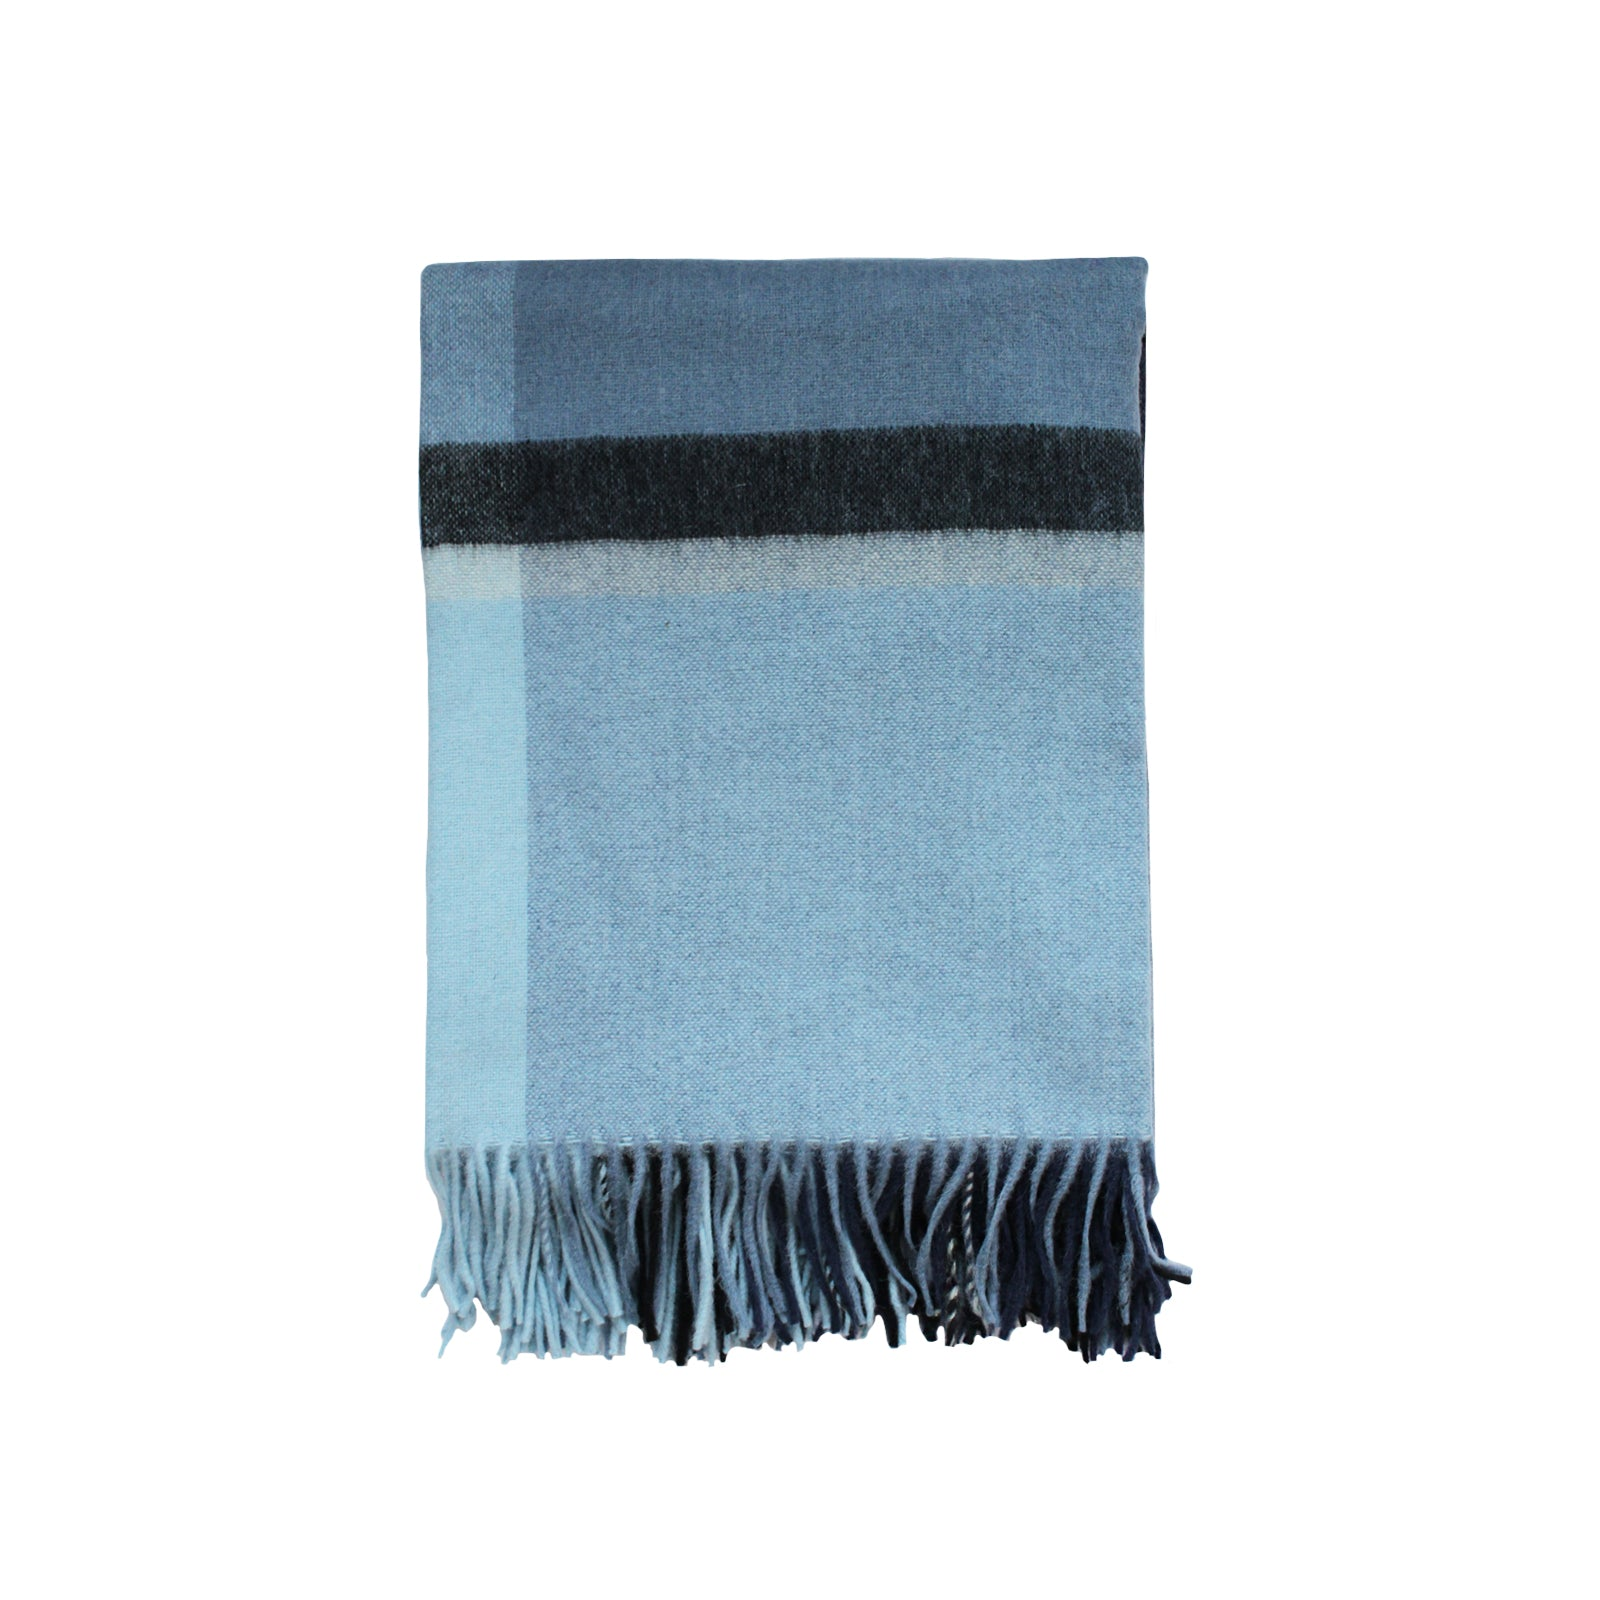 Kennedy Wool Throw in Mixed Blue